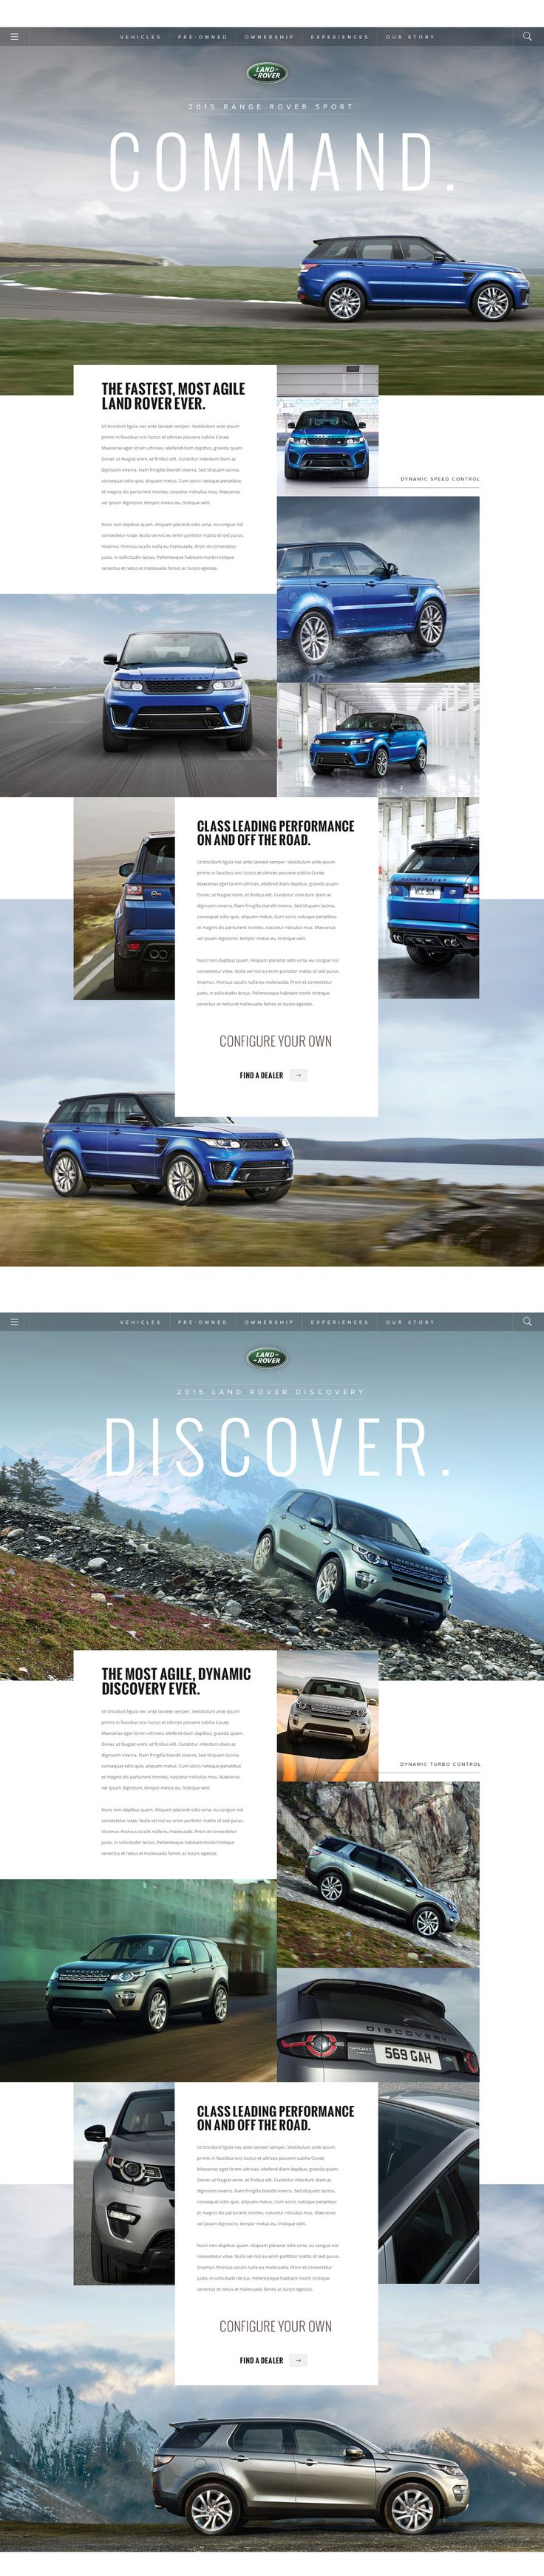 961 best Land Rover images on Pinterest